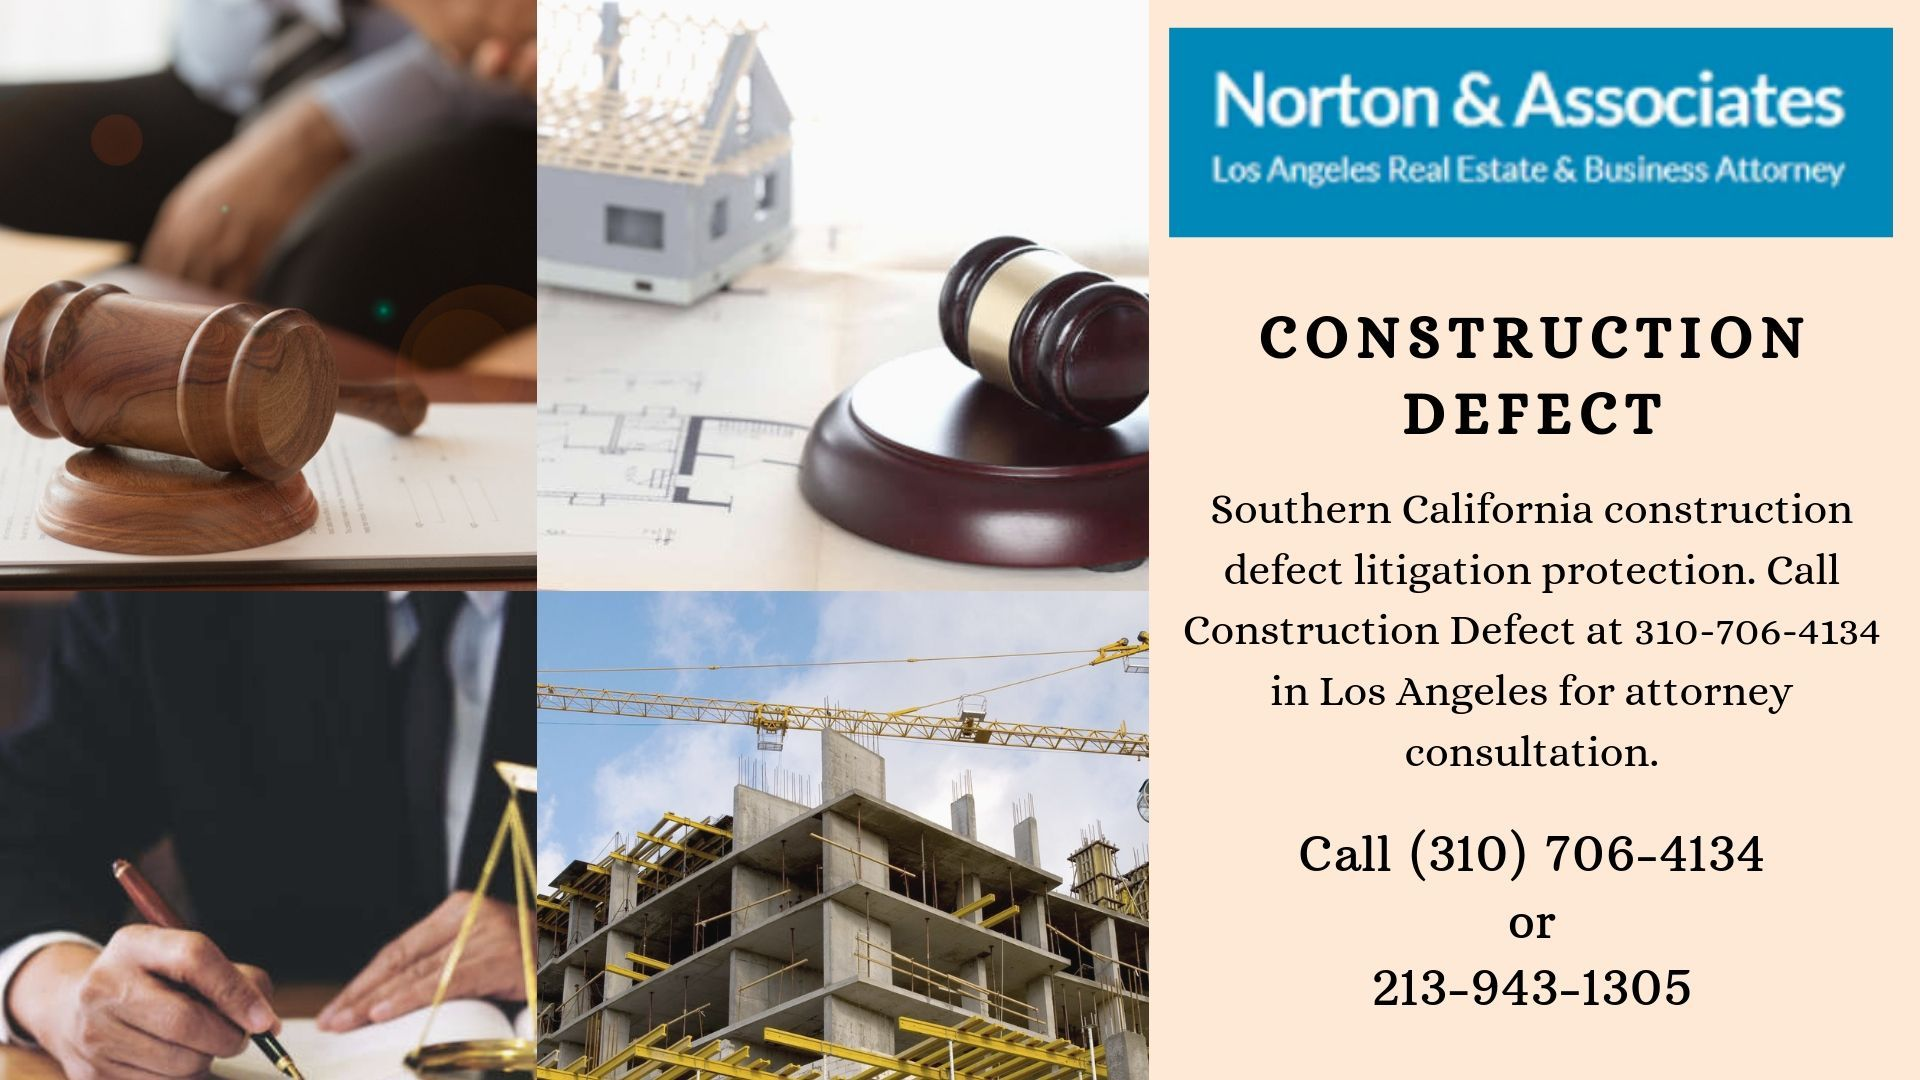 Construction Defect Los Angeles Attorney At Law Construction Los Angeles Real Estate